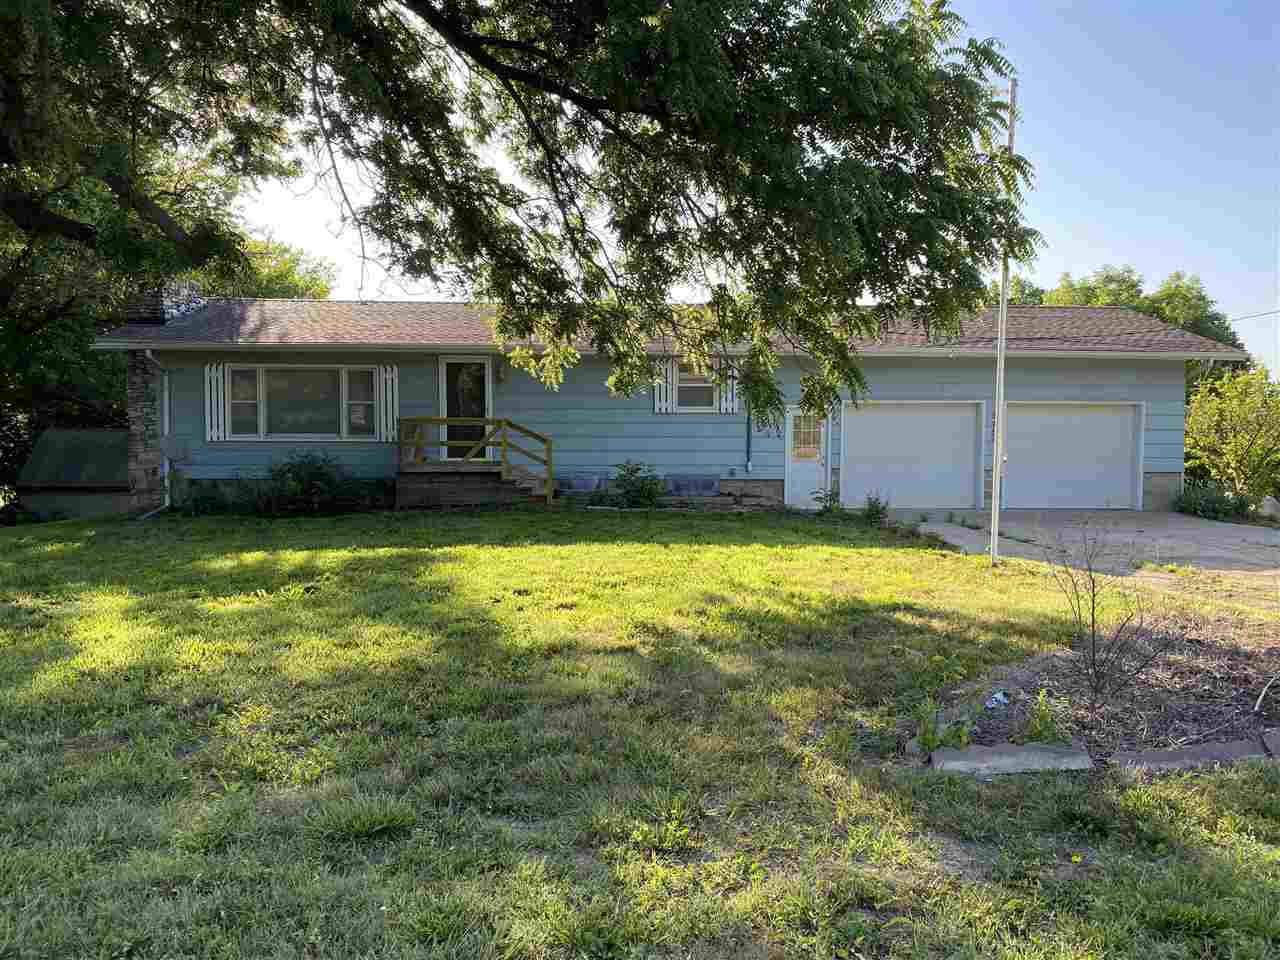 Enjoy country living minutes from Manhattan and in the Riley County school district.  This ranch 4 bedroom, 2 bath home boasts plenty of living area with a walk out basement on over an acre and half.  Contact Lori Rogge at 785 556 7162 to tour today!